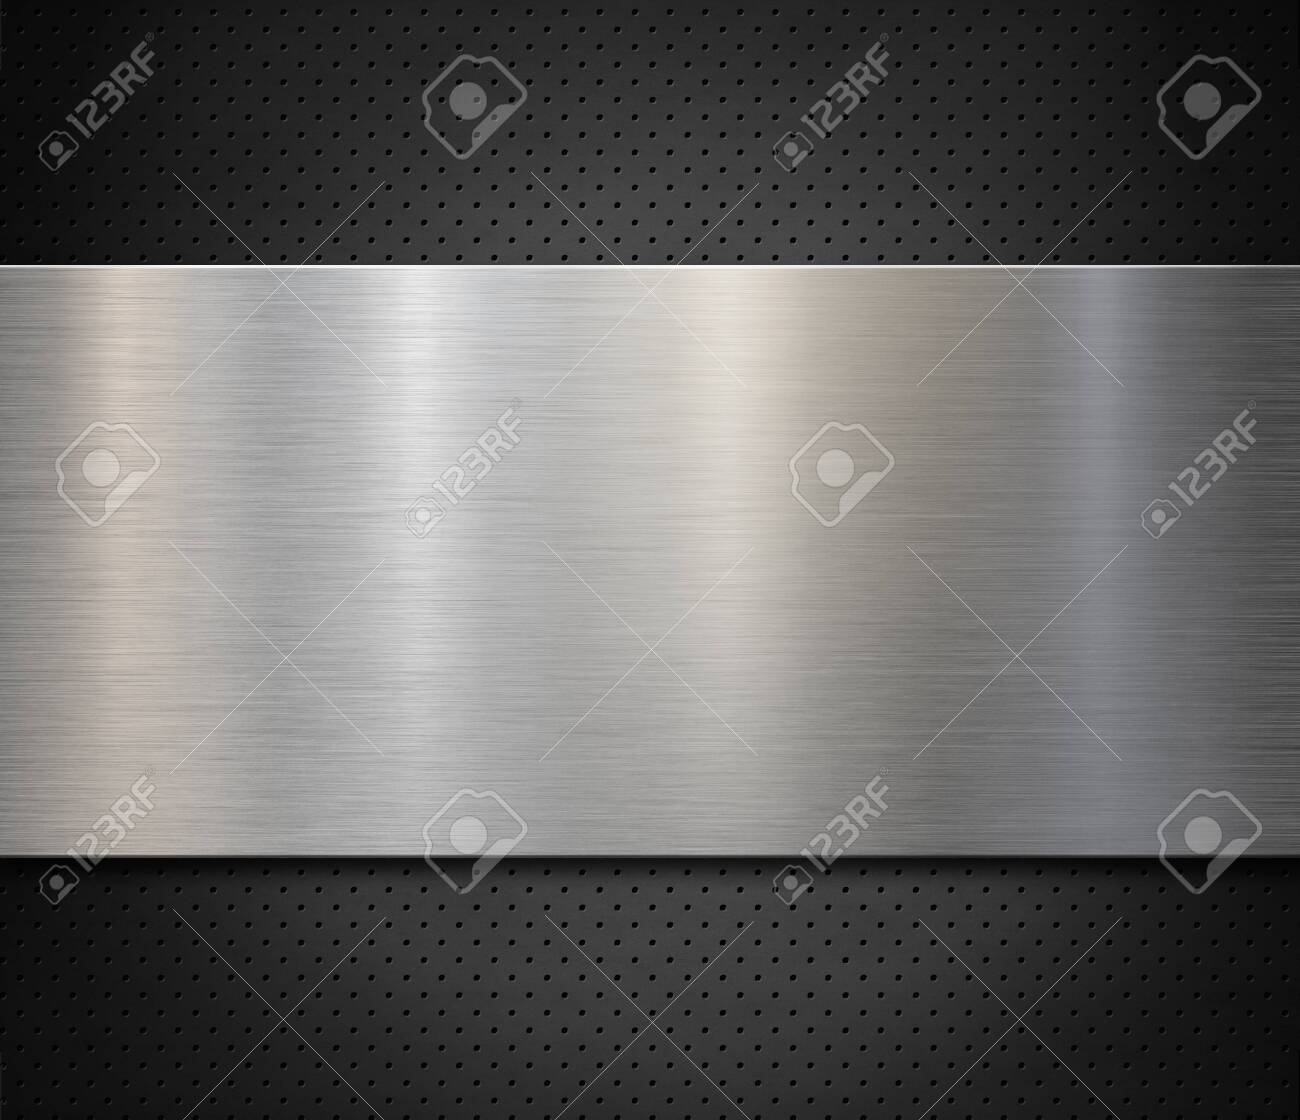 Brushed steel or aluminum metal panel over perforated background 3d illustration - 131312339